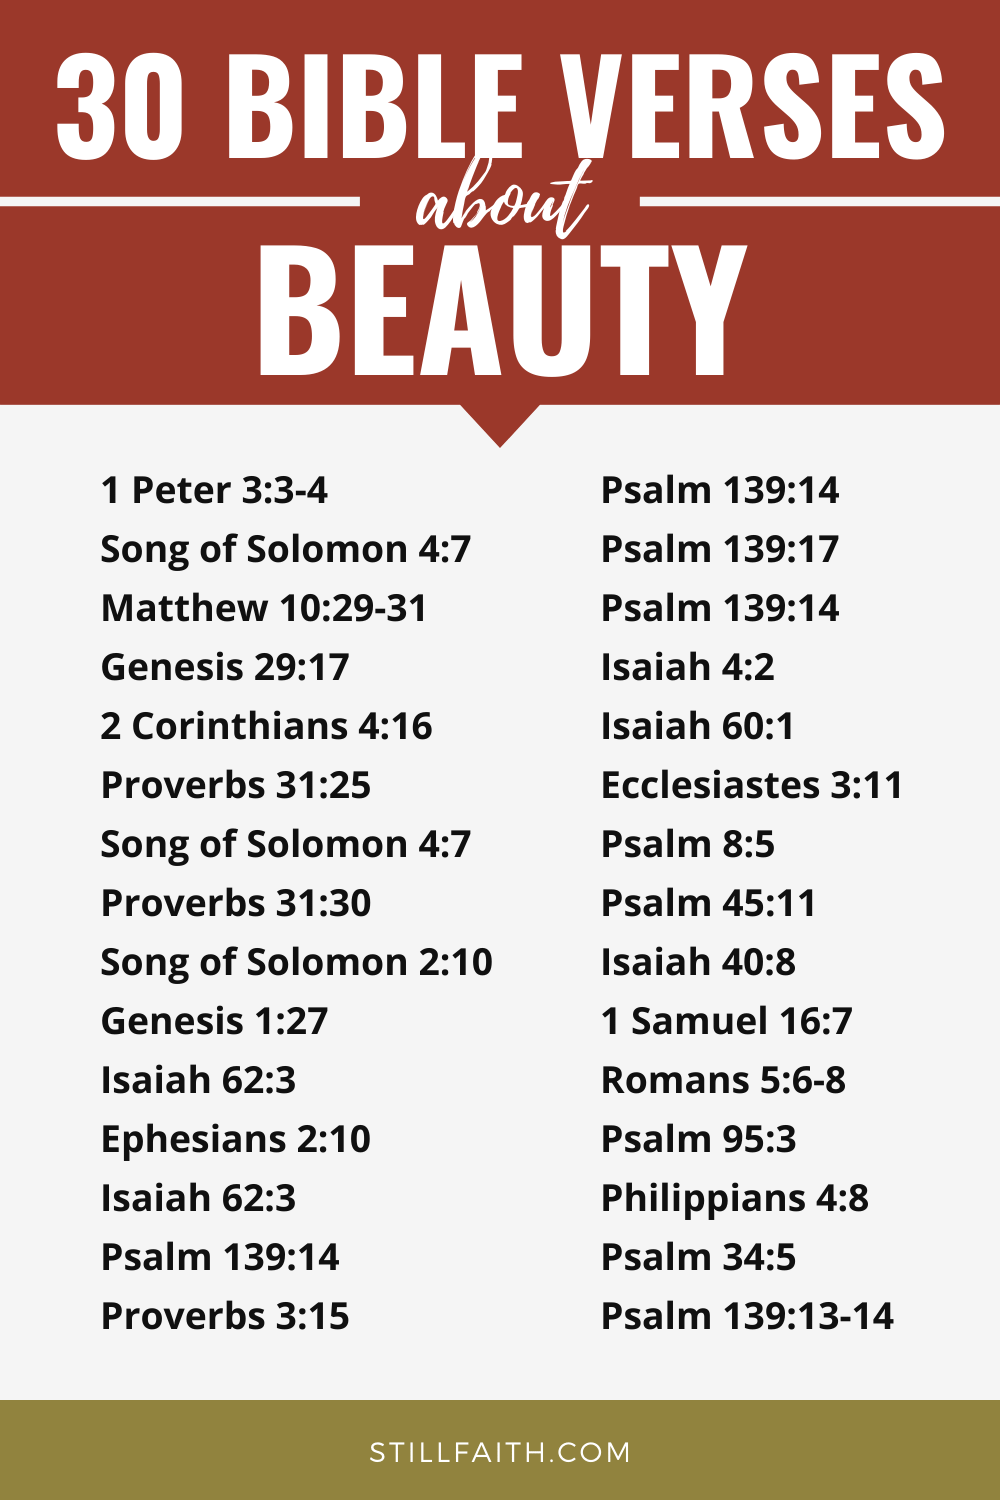 157 Bible Verses about Beauty